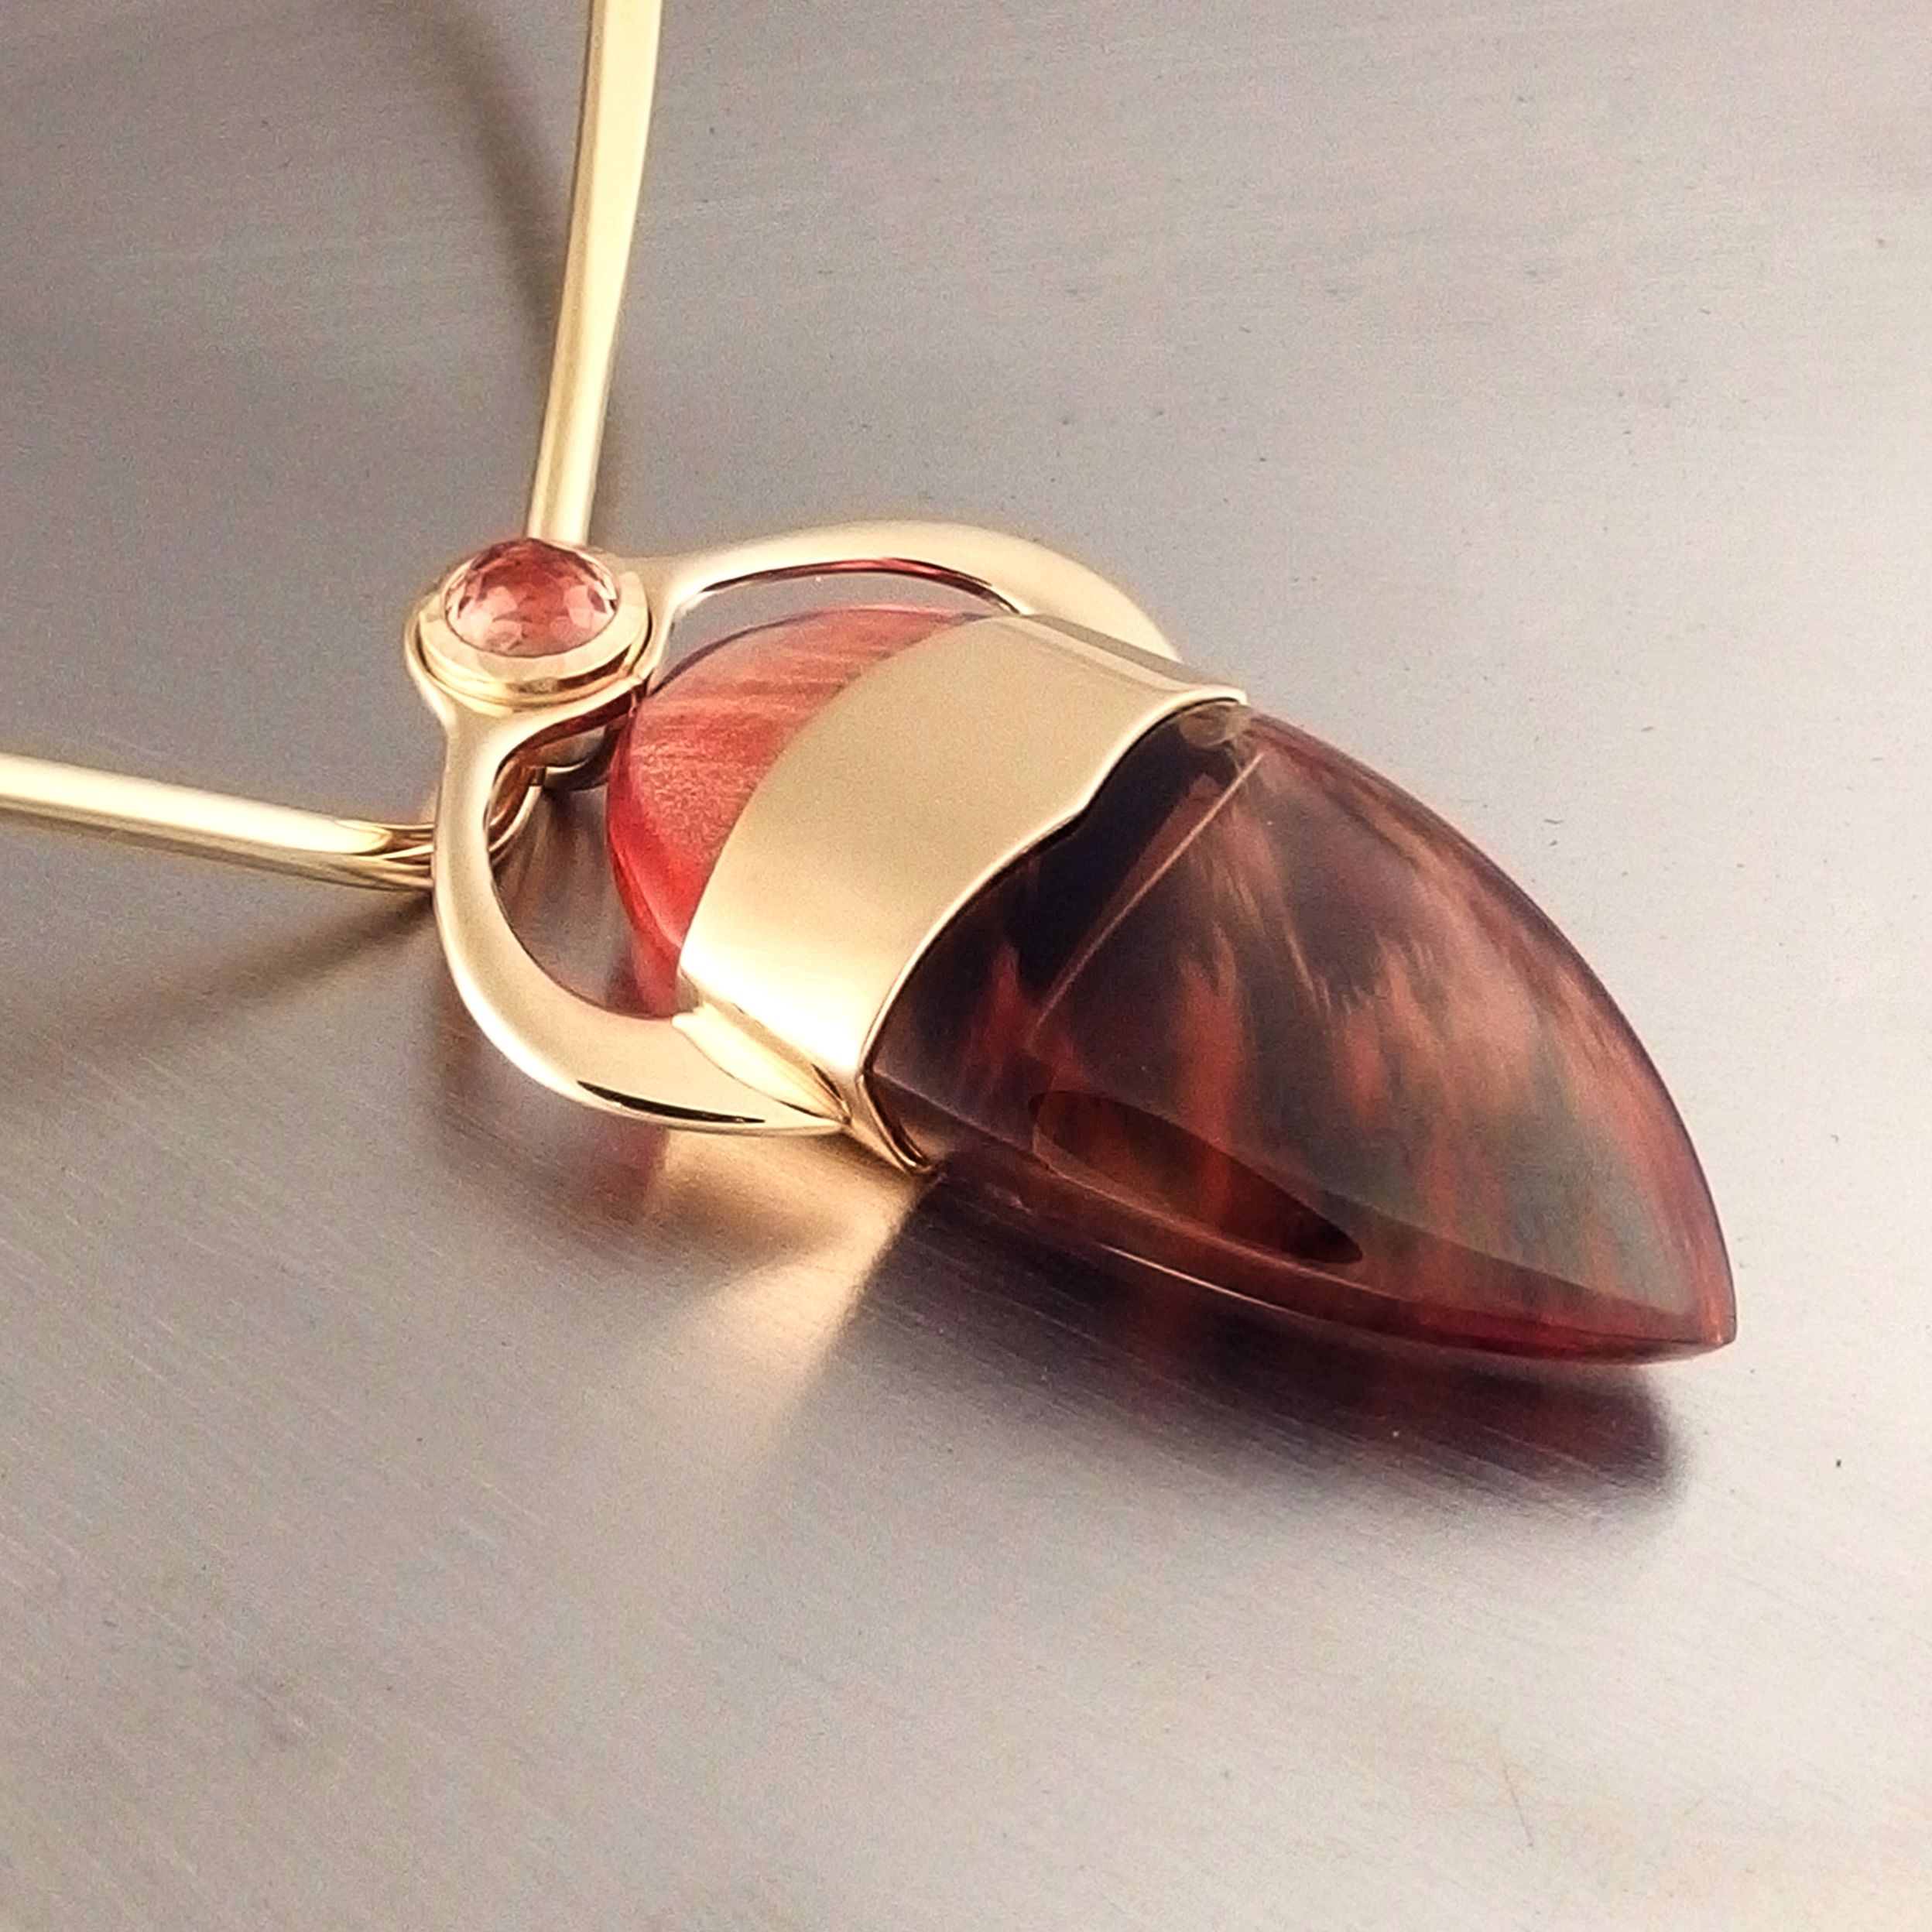 precious teardrop silver feldspar cabochon pendant sunstone sterling goethite heart semi products crystal genuine